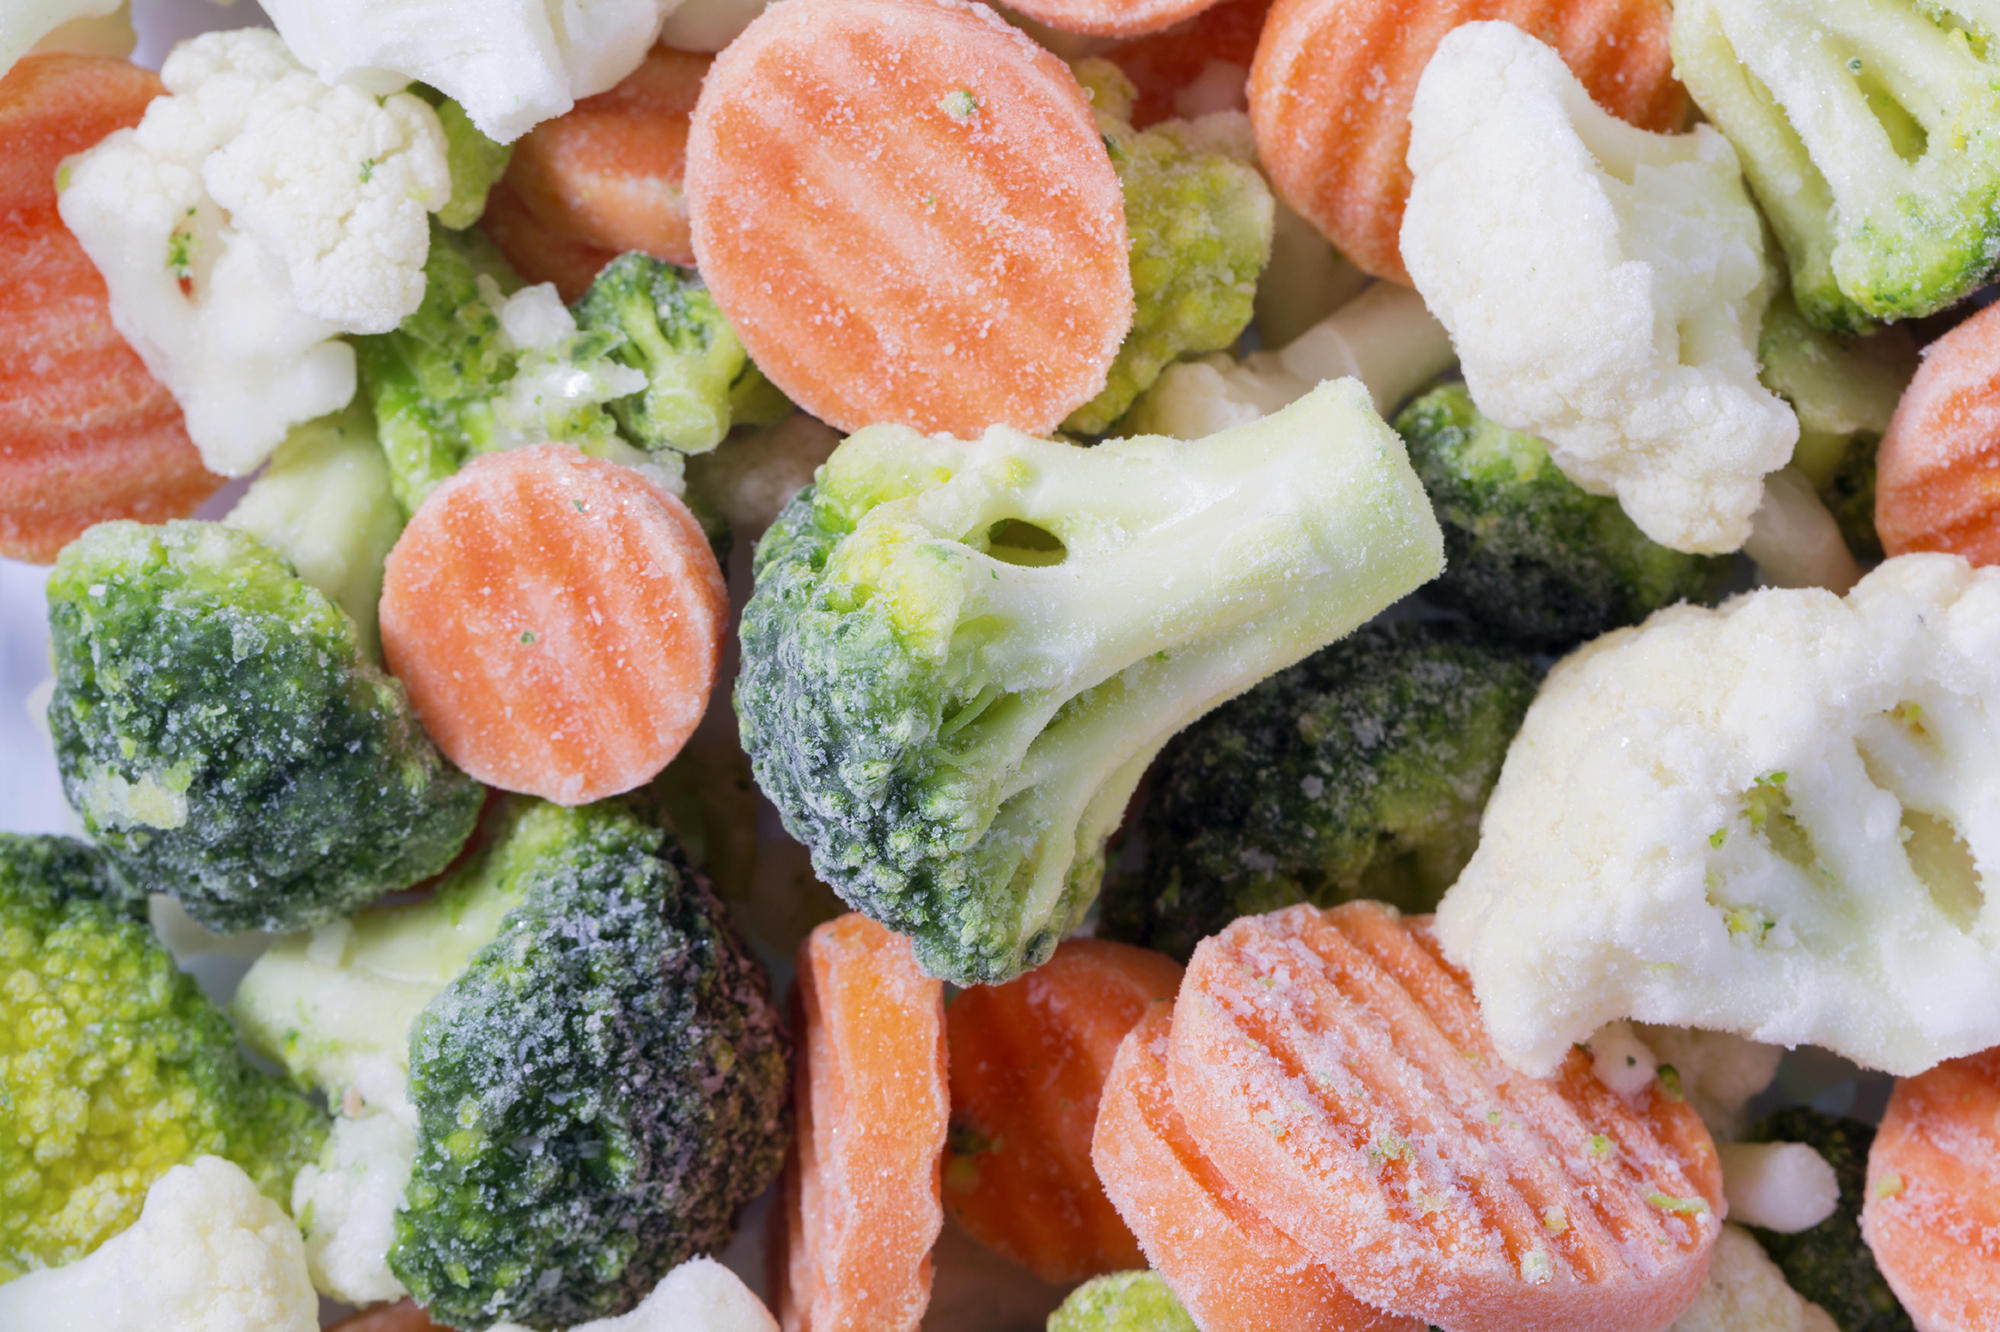 Pasco company recalls frozen vegetables linked to listeria